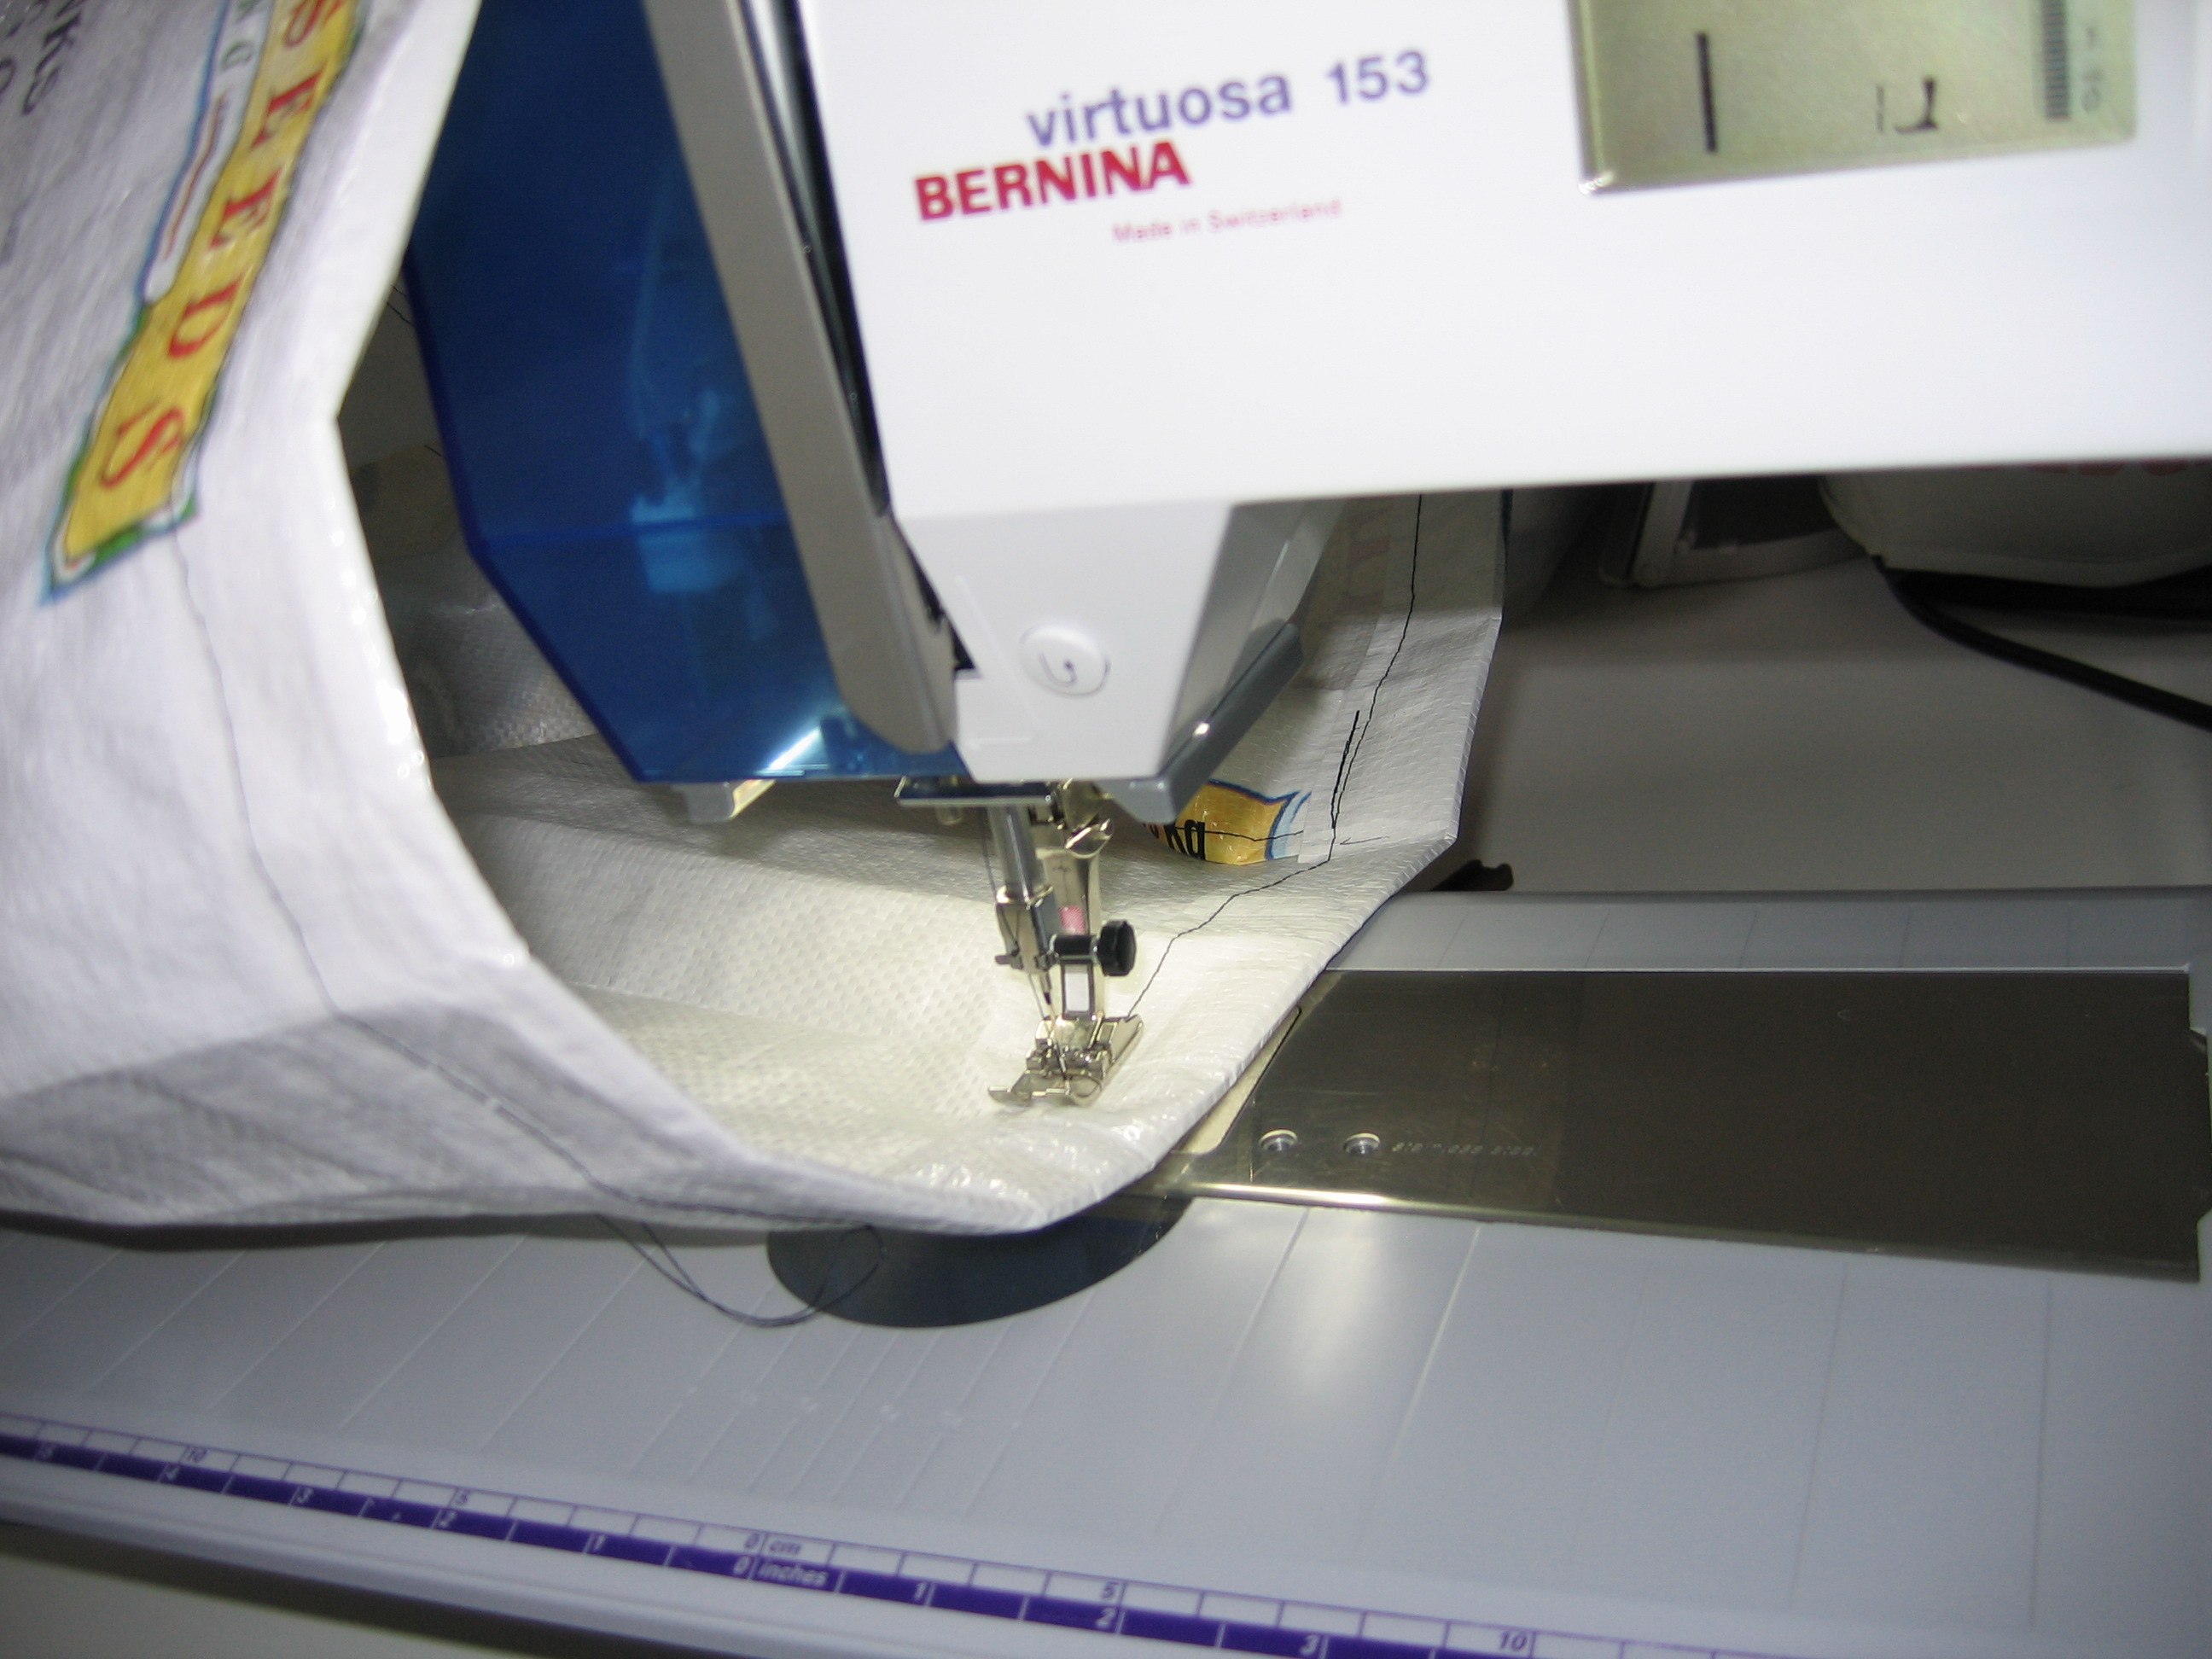 Picture of Attaching the Handles to the Bag...